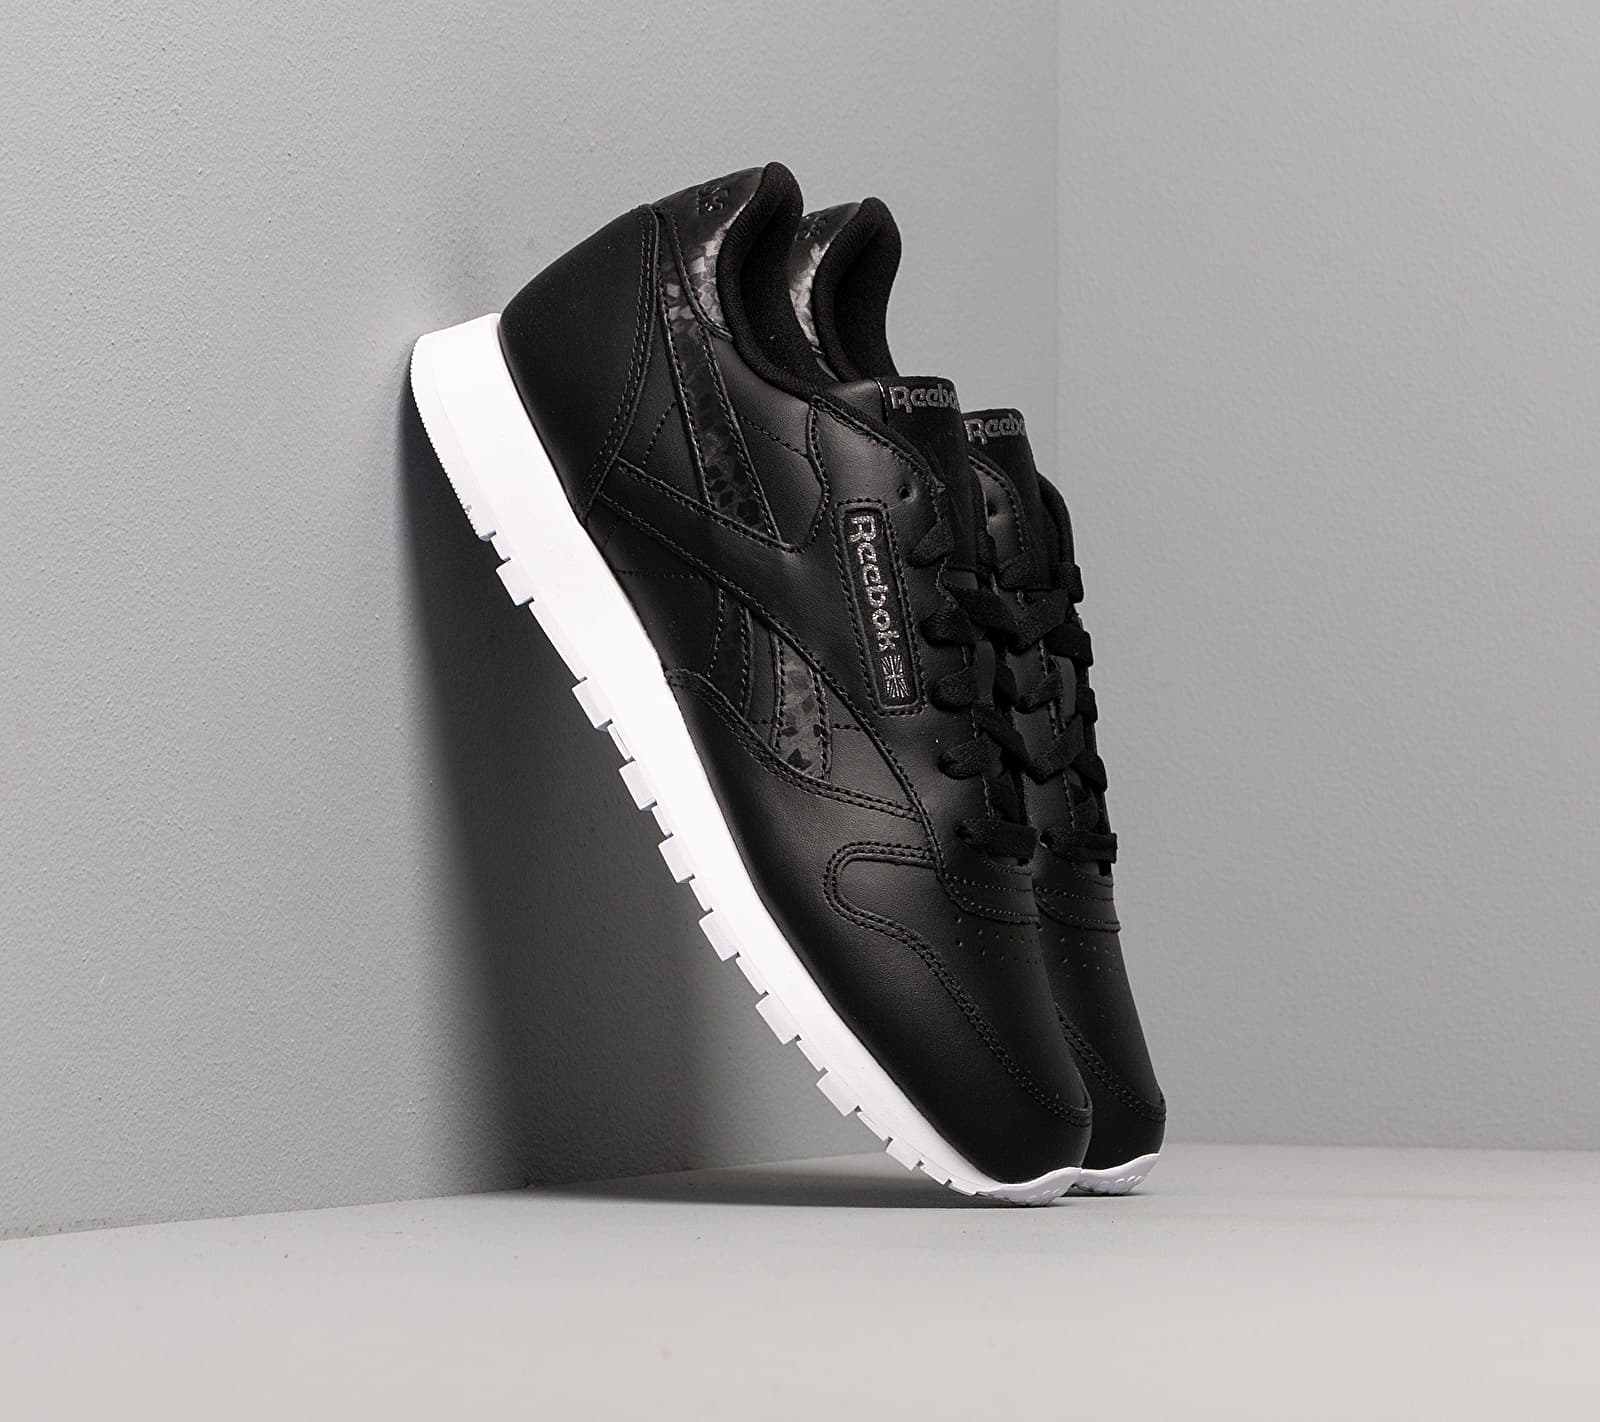 Reebok Classic Leather Black/ Black/ White EUR 37